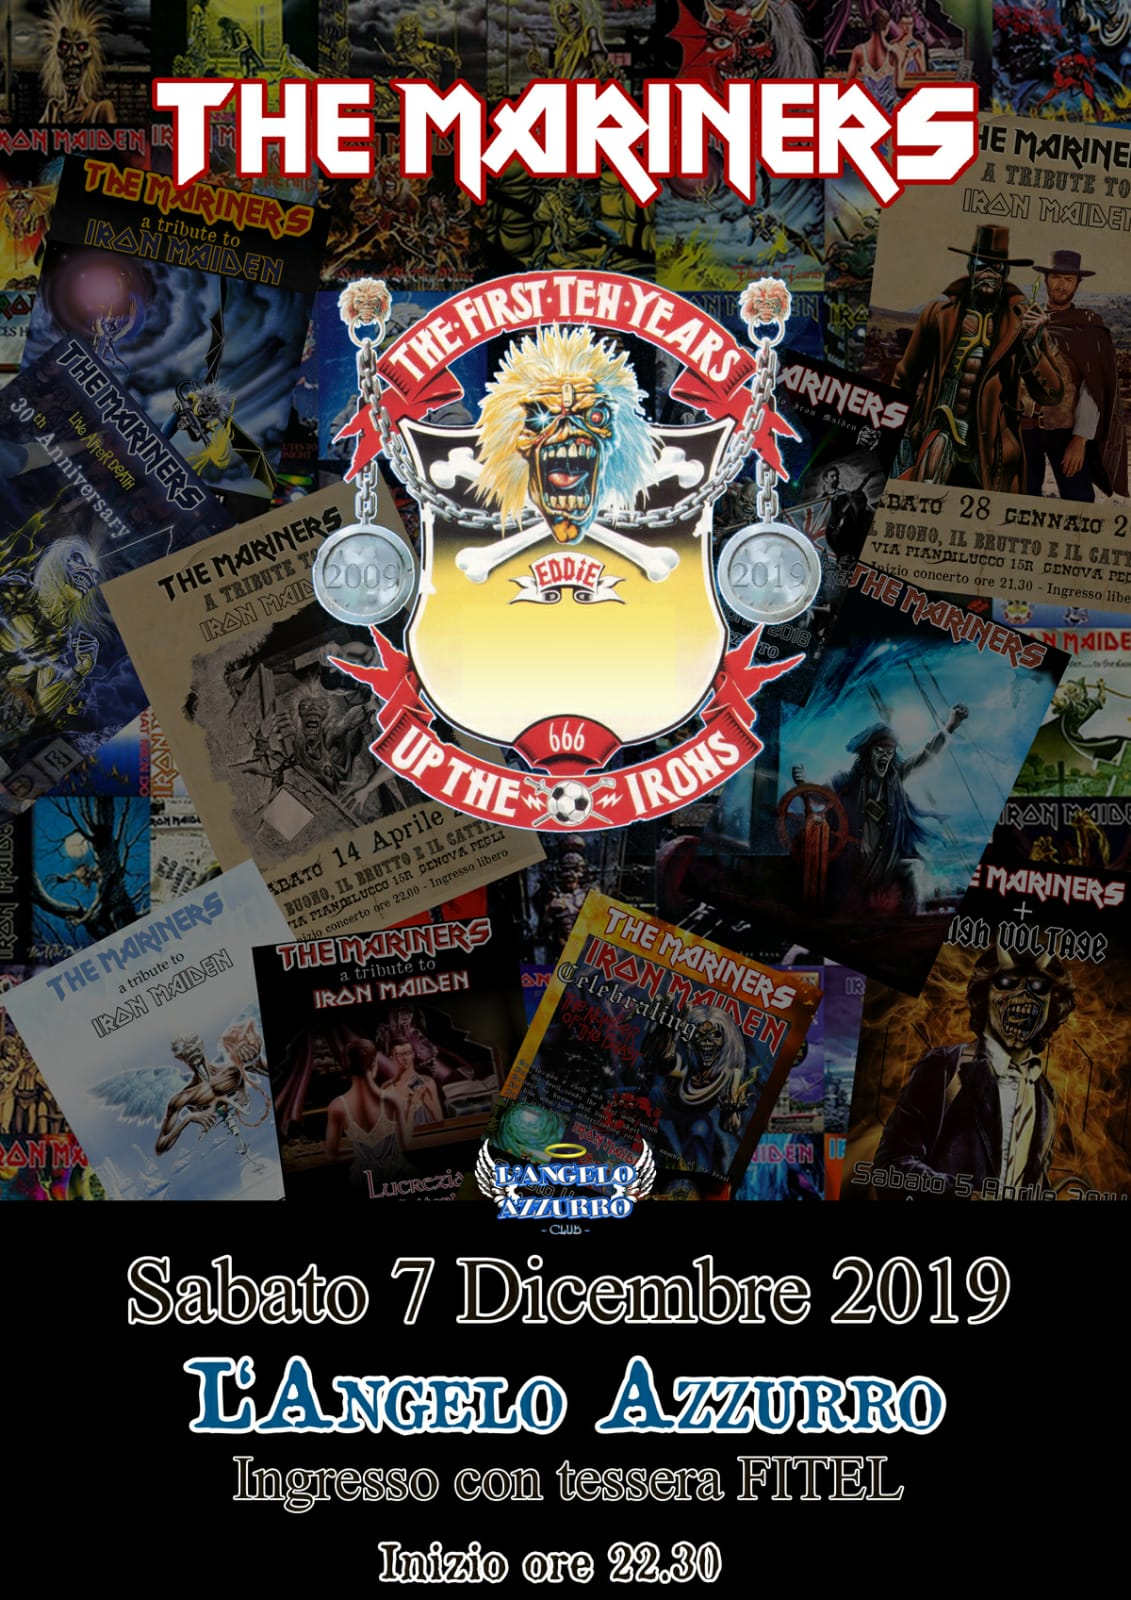 The Mariners: Iron Maiden tribute band in concerto